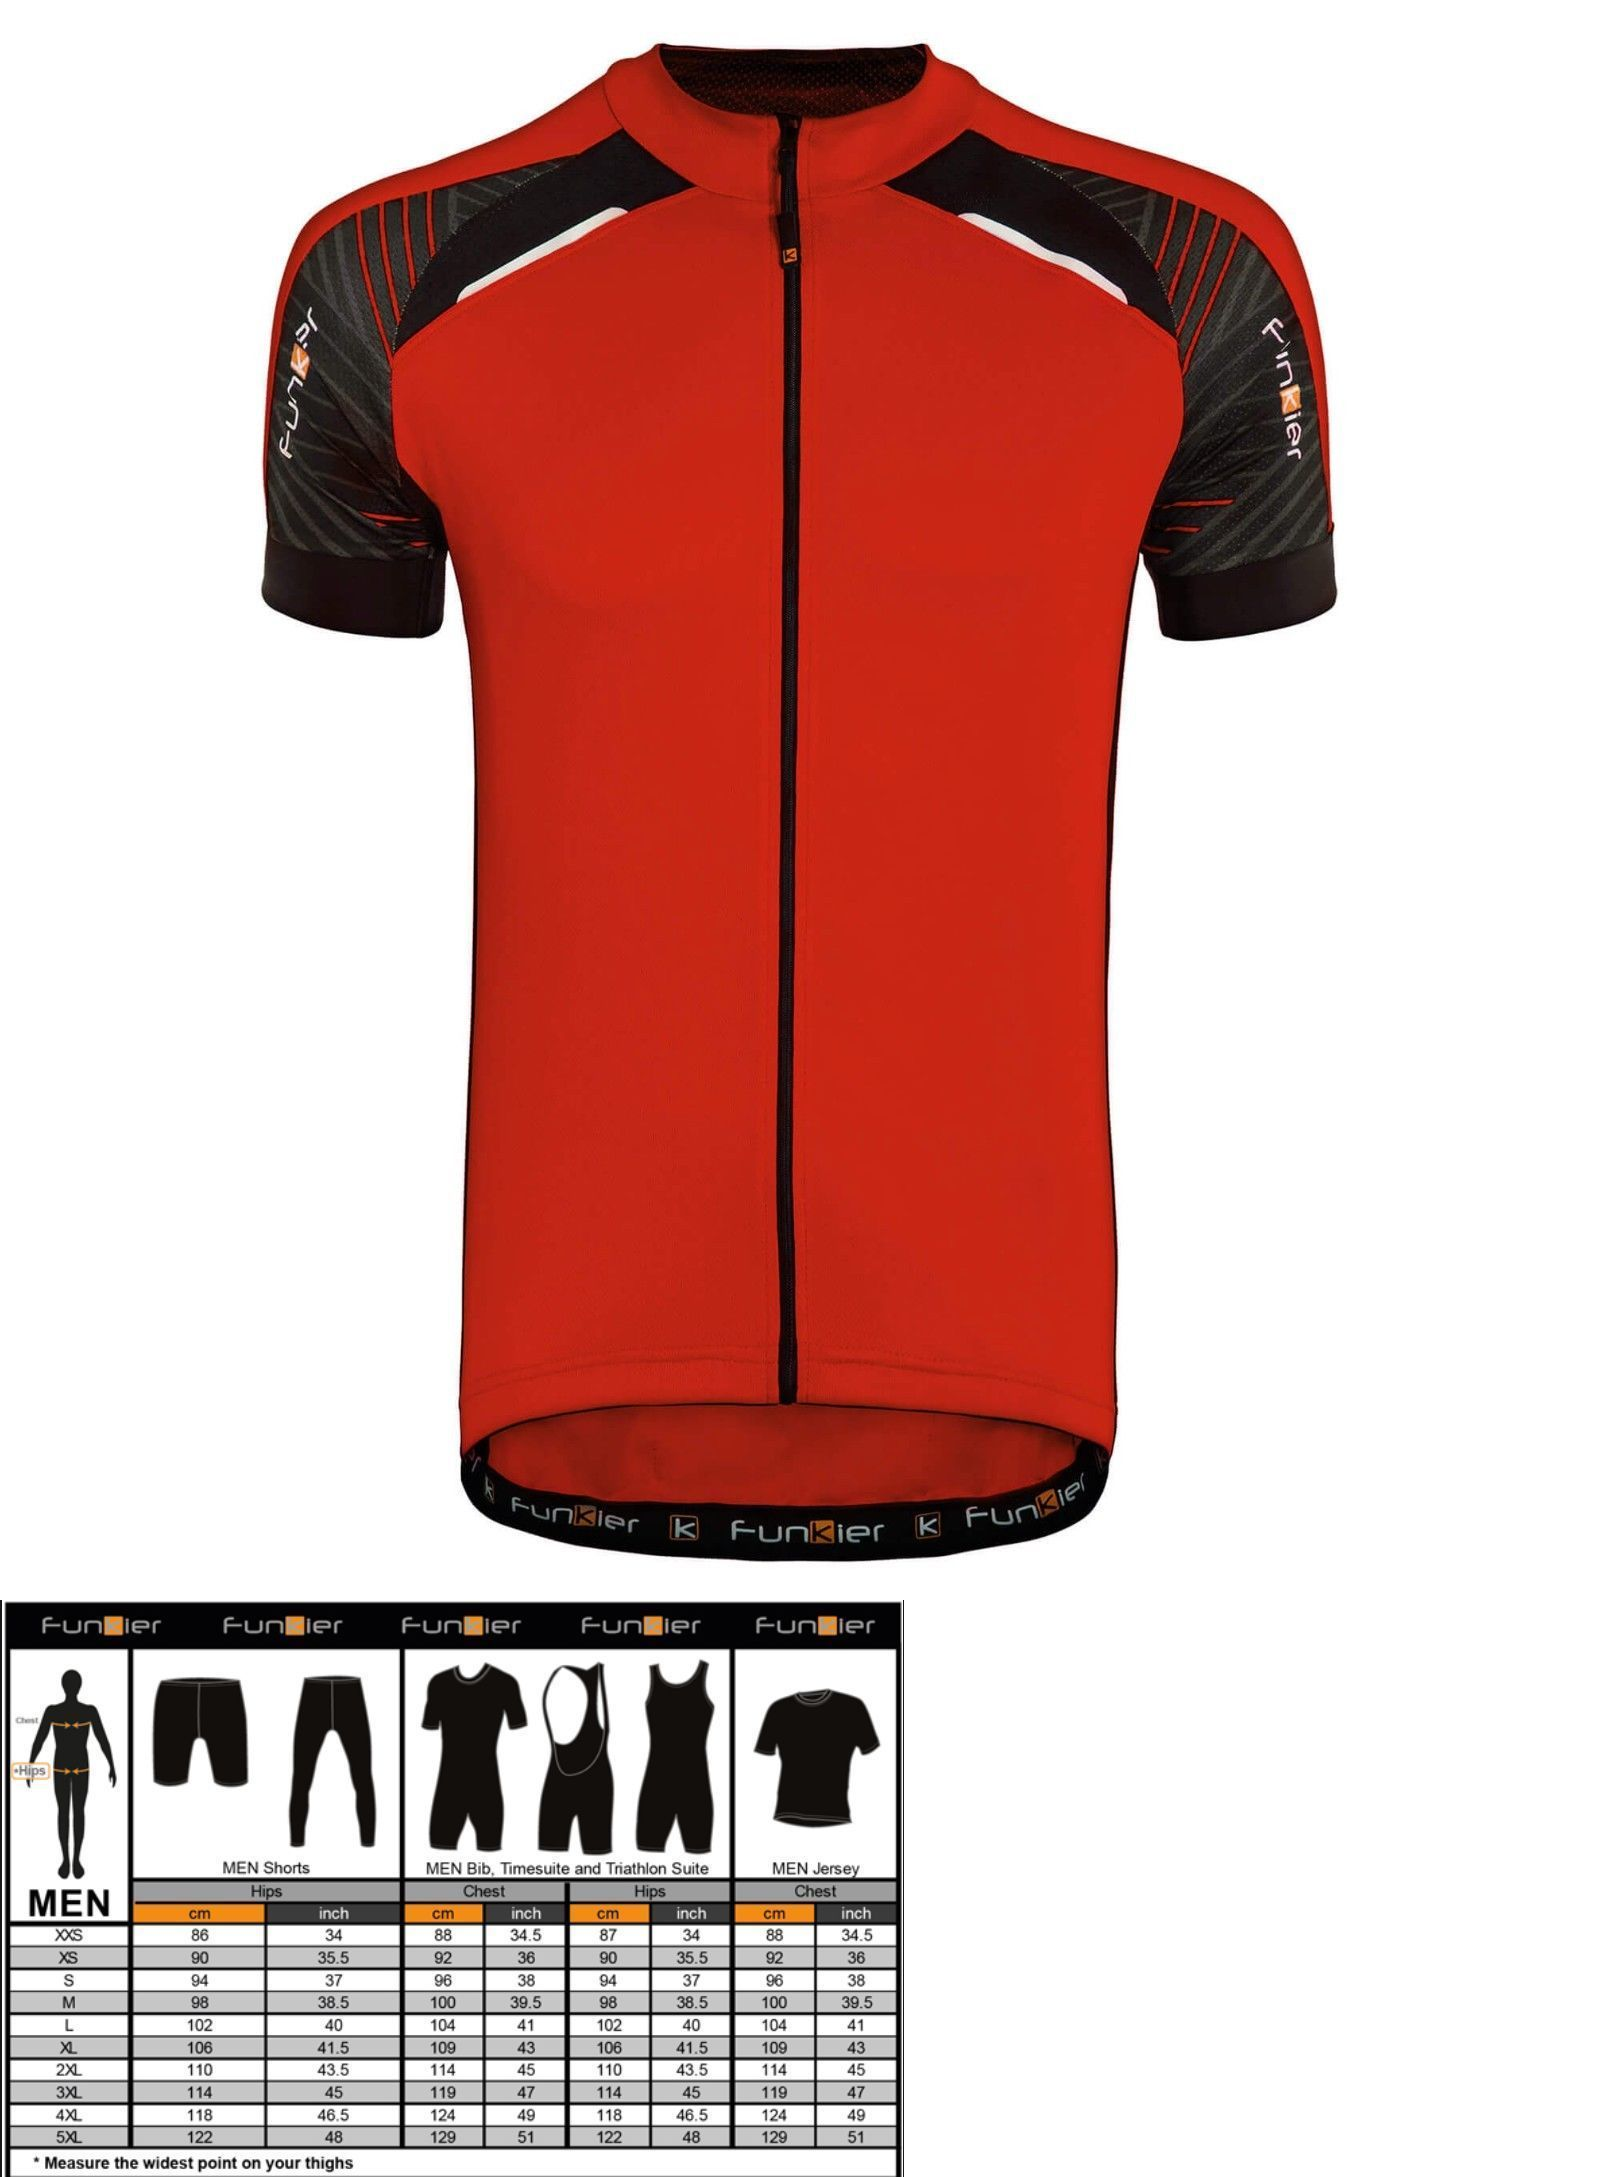 Cycling Clothing 158990  New Funkier Gents Short Sleeve Cycling Jersey Red  J730-5 -  BUY IT NOW ONLY   24.95 on  eBay  cycling  clothing  funkier   gents ... 1a4cd43cd